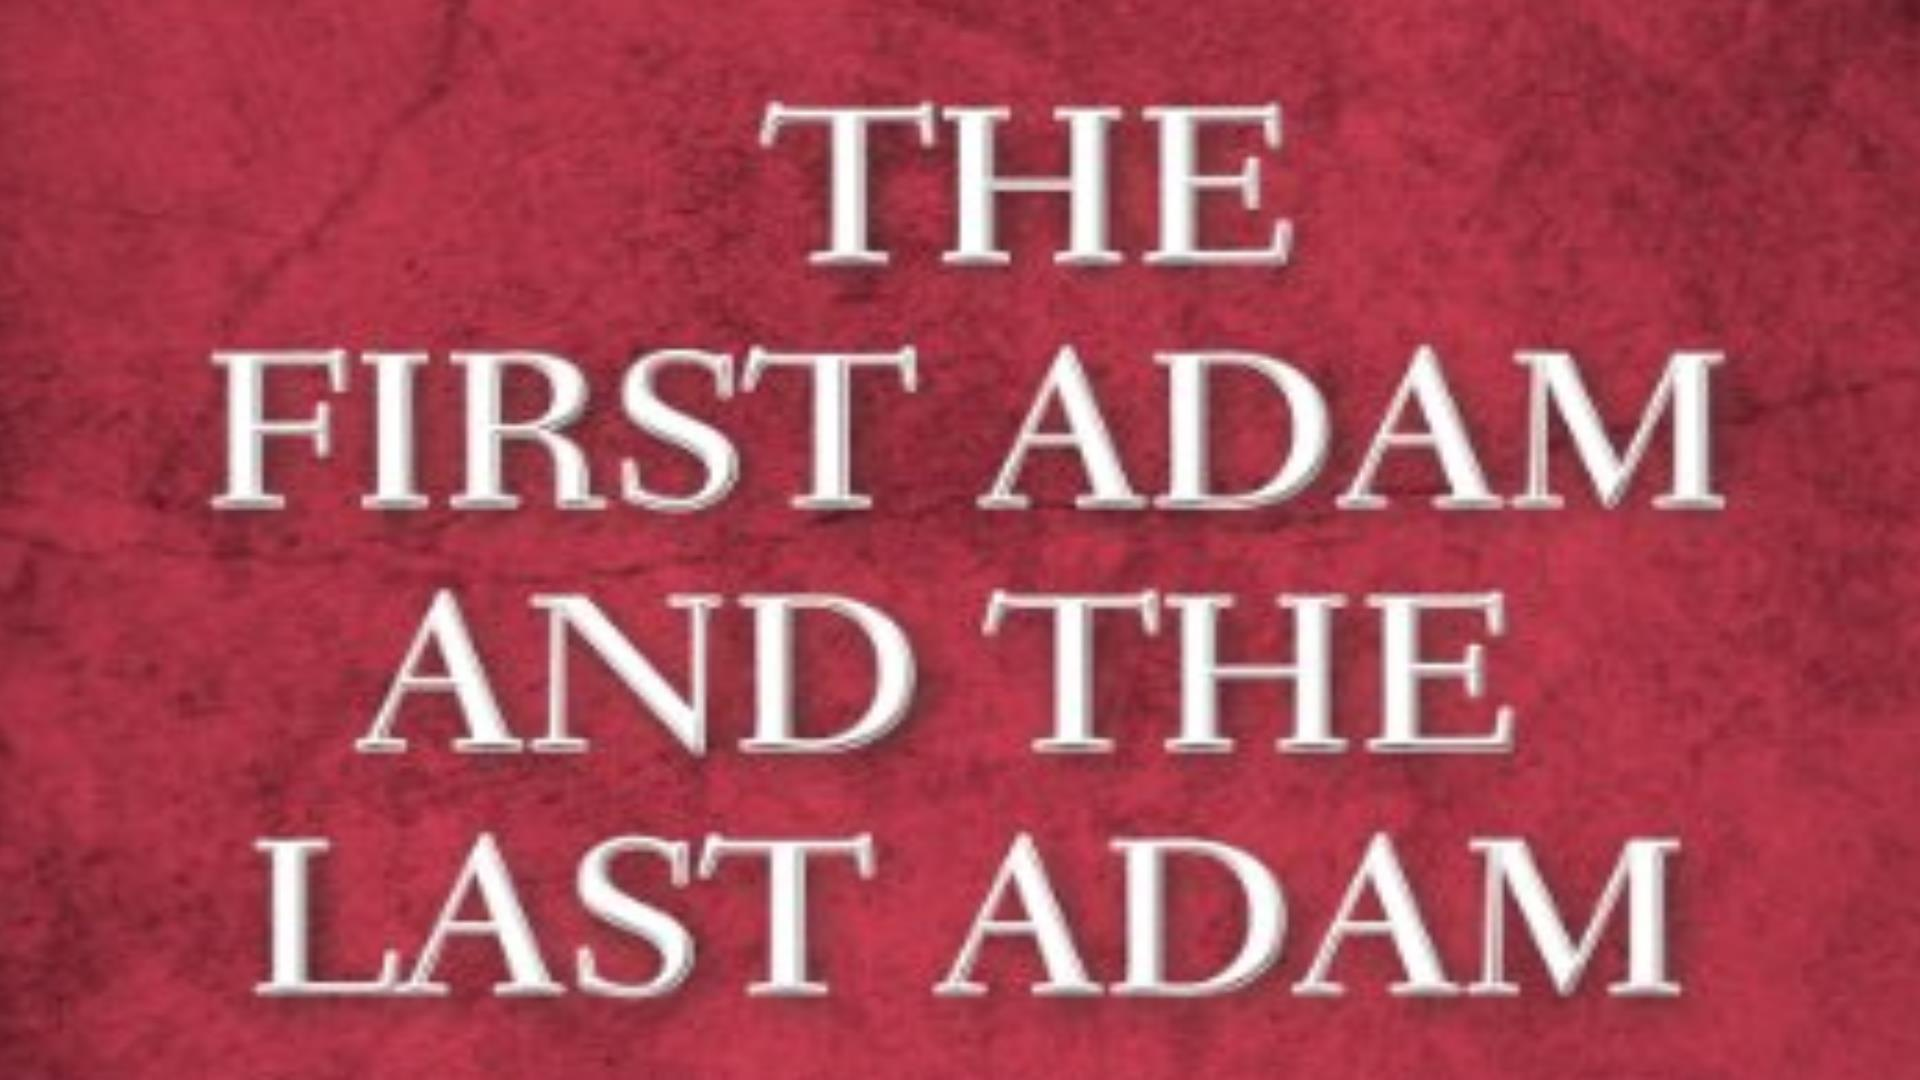 First and Last Adam